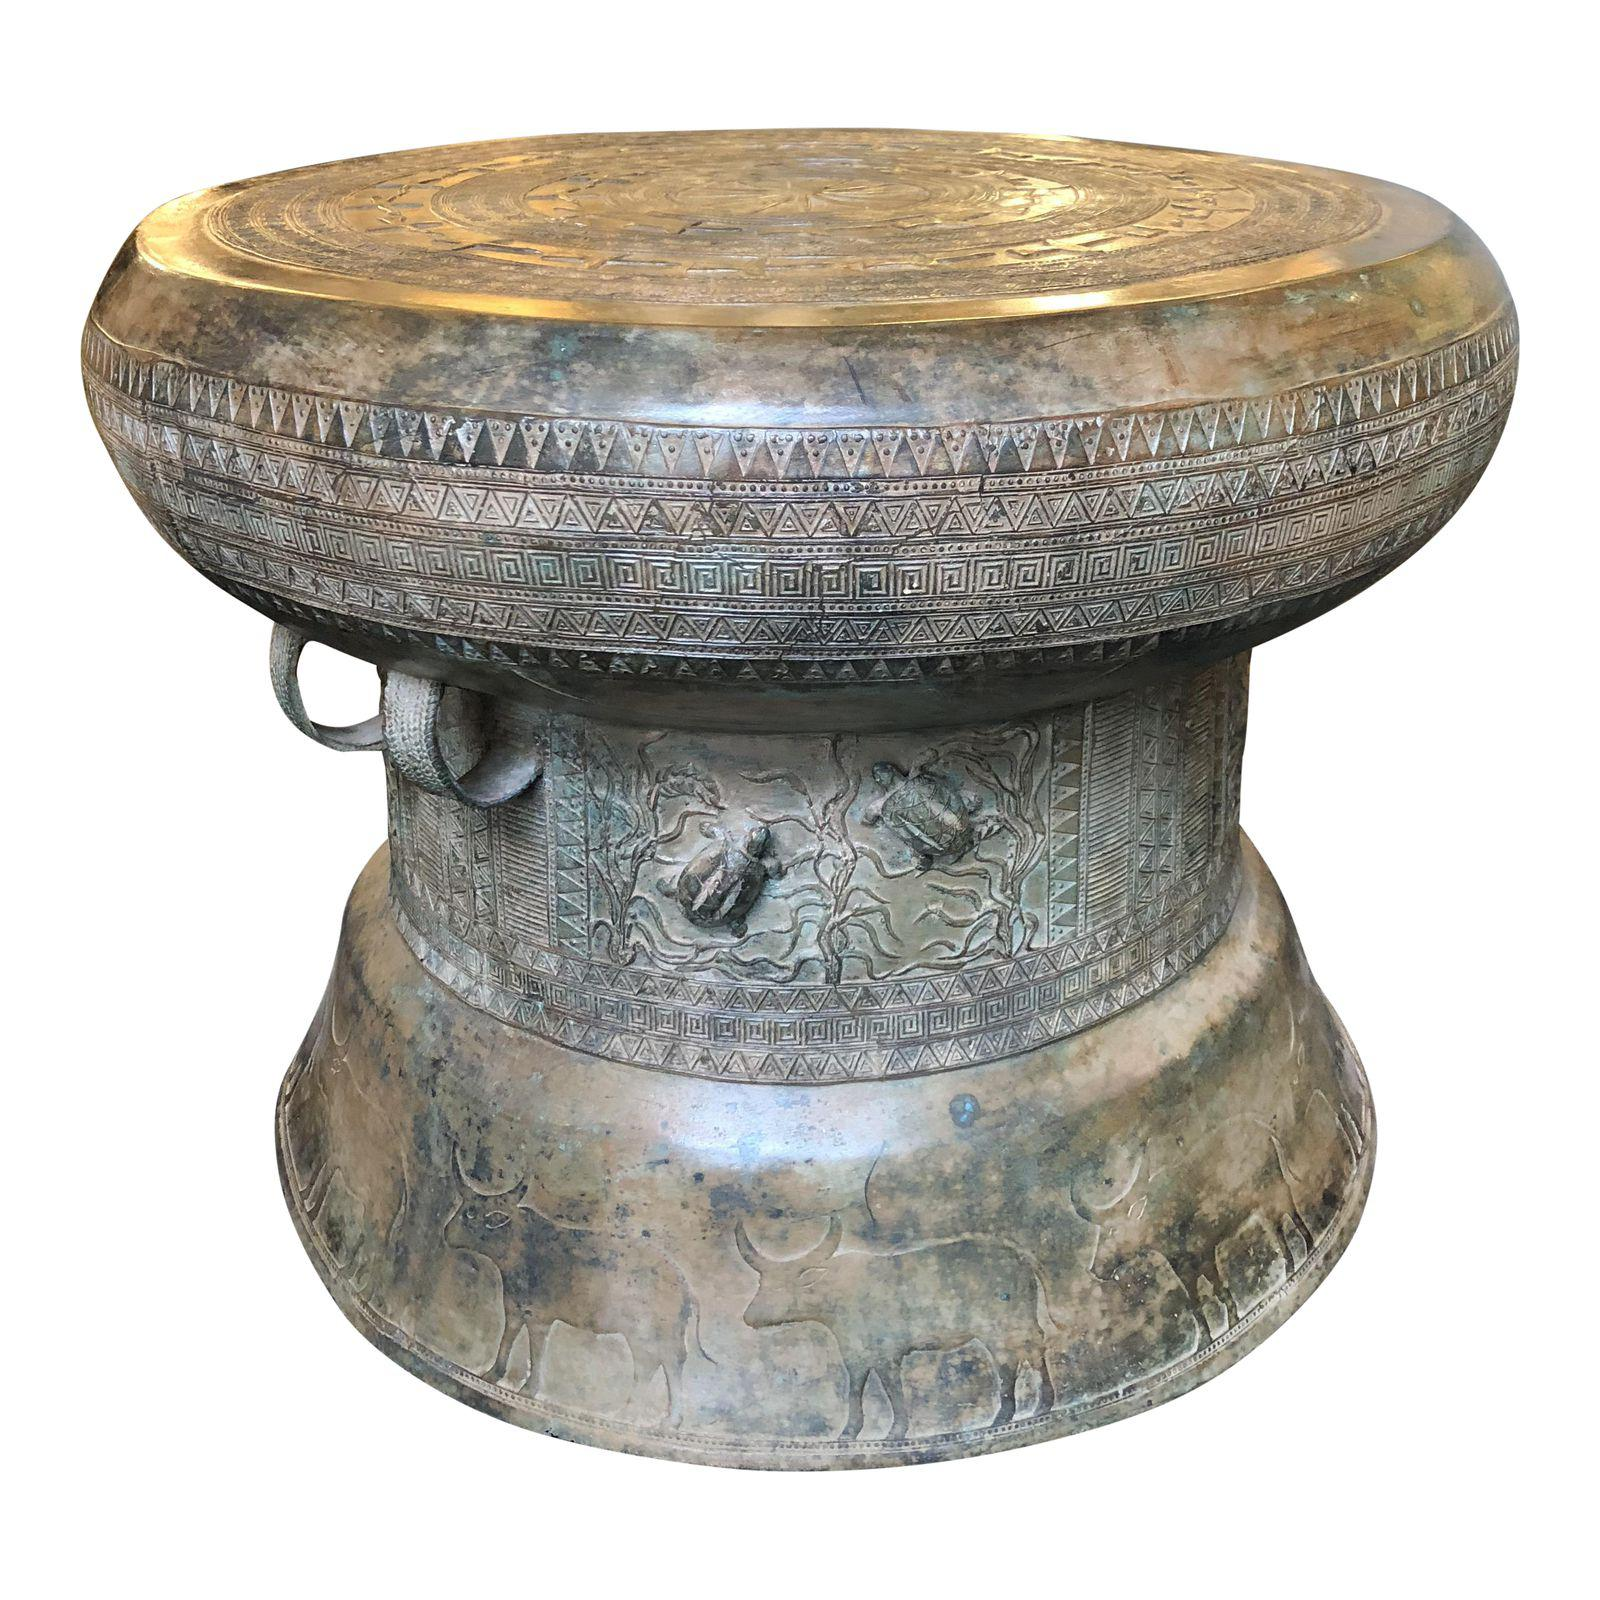 laotian rain drum side table original design plus gallery brass accent modern tables glass nesting target wicker outdoor furniture bbq prep crystal base lamp farmhouse chairs